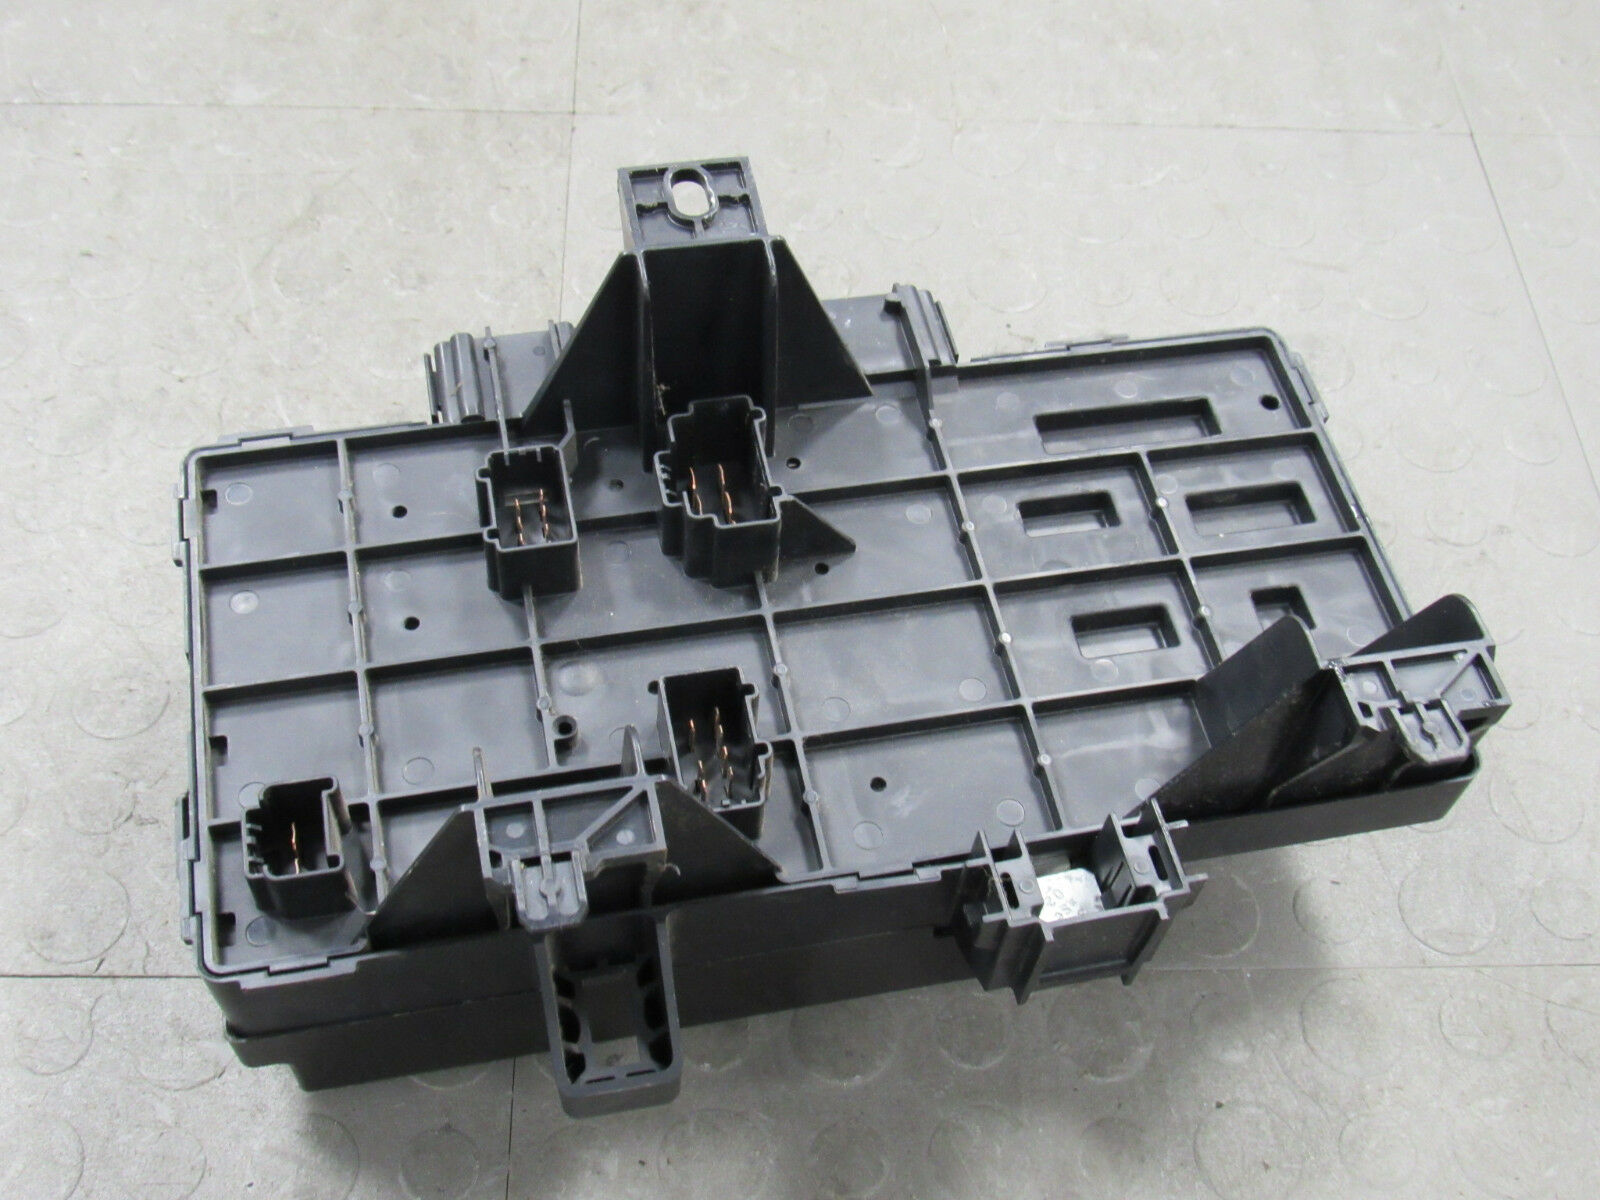 2003 Expedition Fuse Box Part Number : Expedition navigator interior fuse relay box block